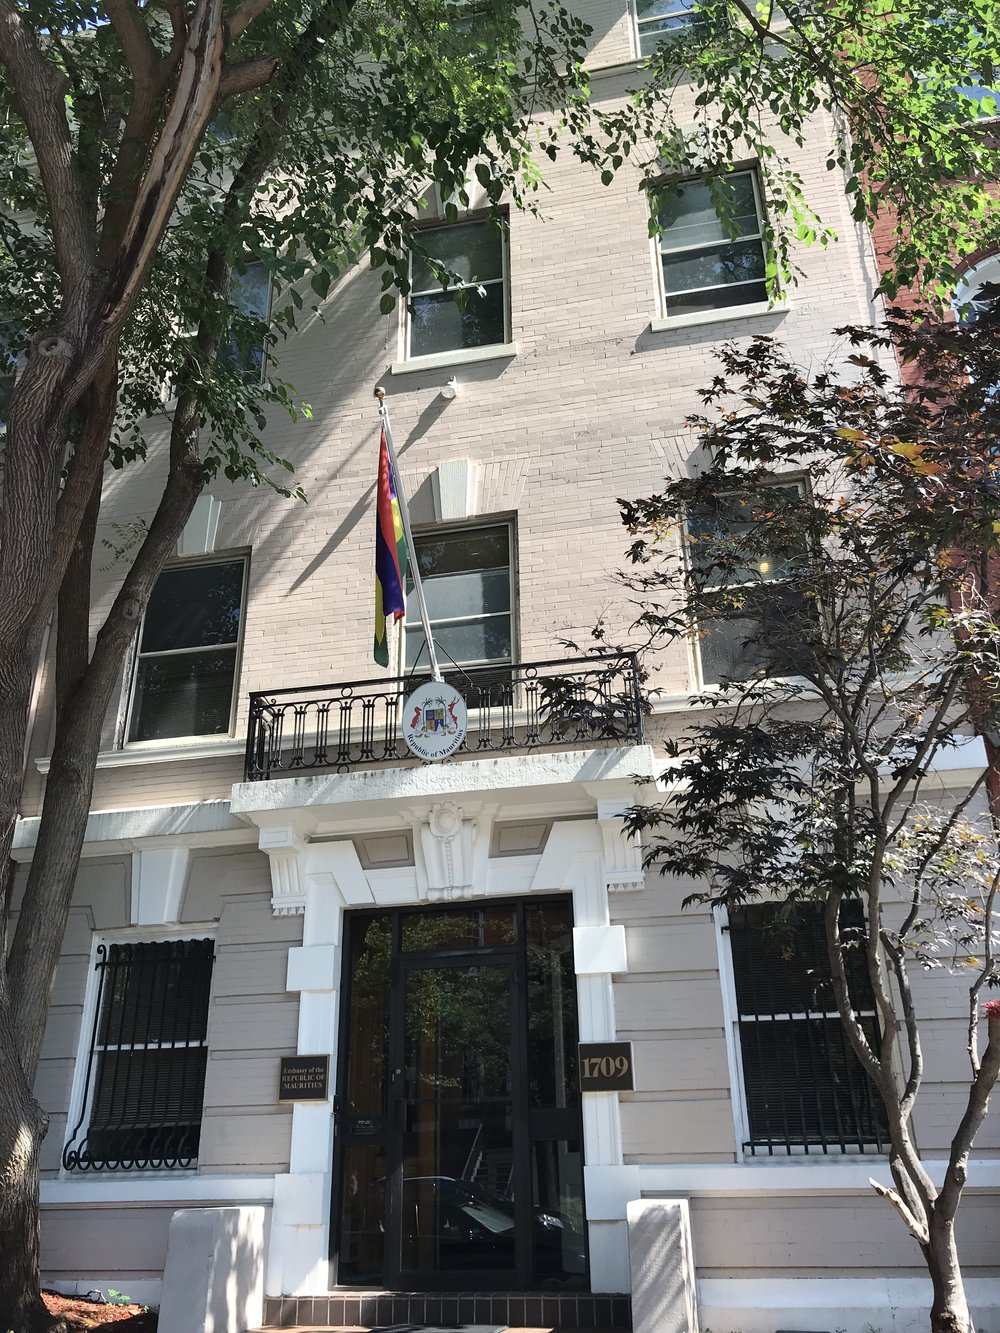 The Embassy of Mauritius.